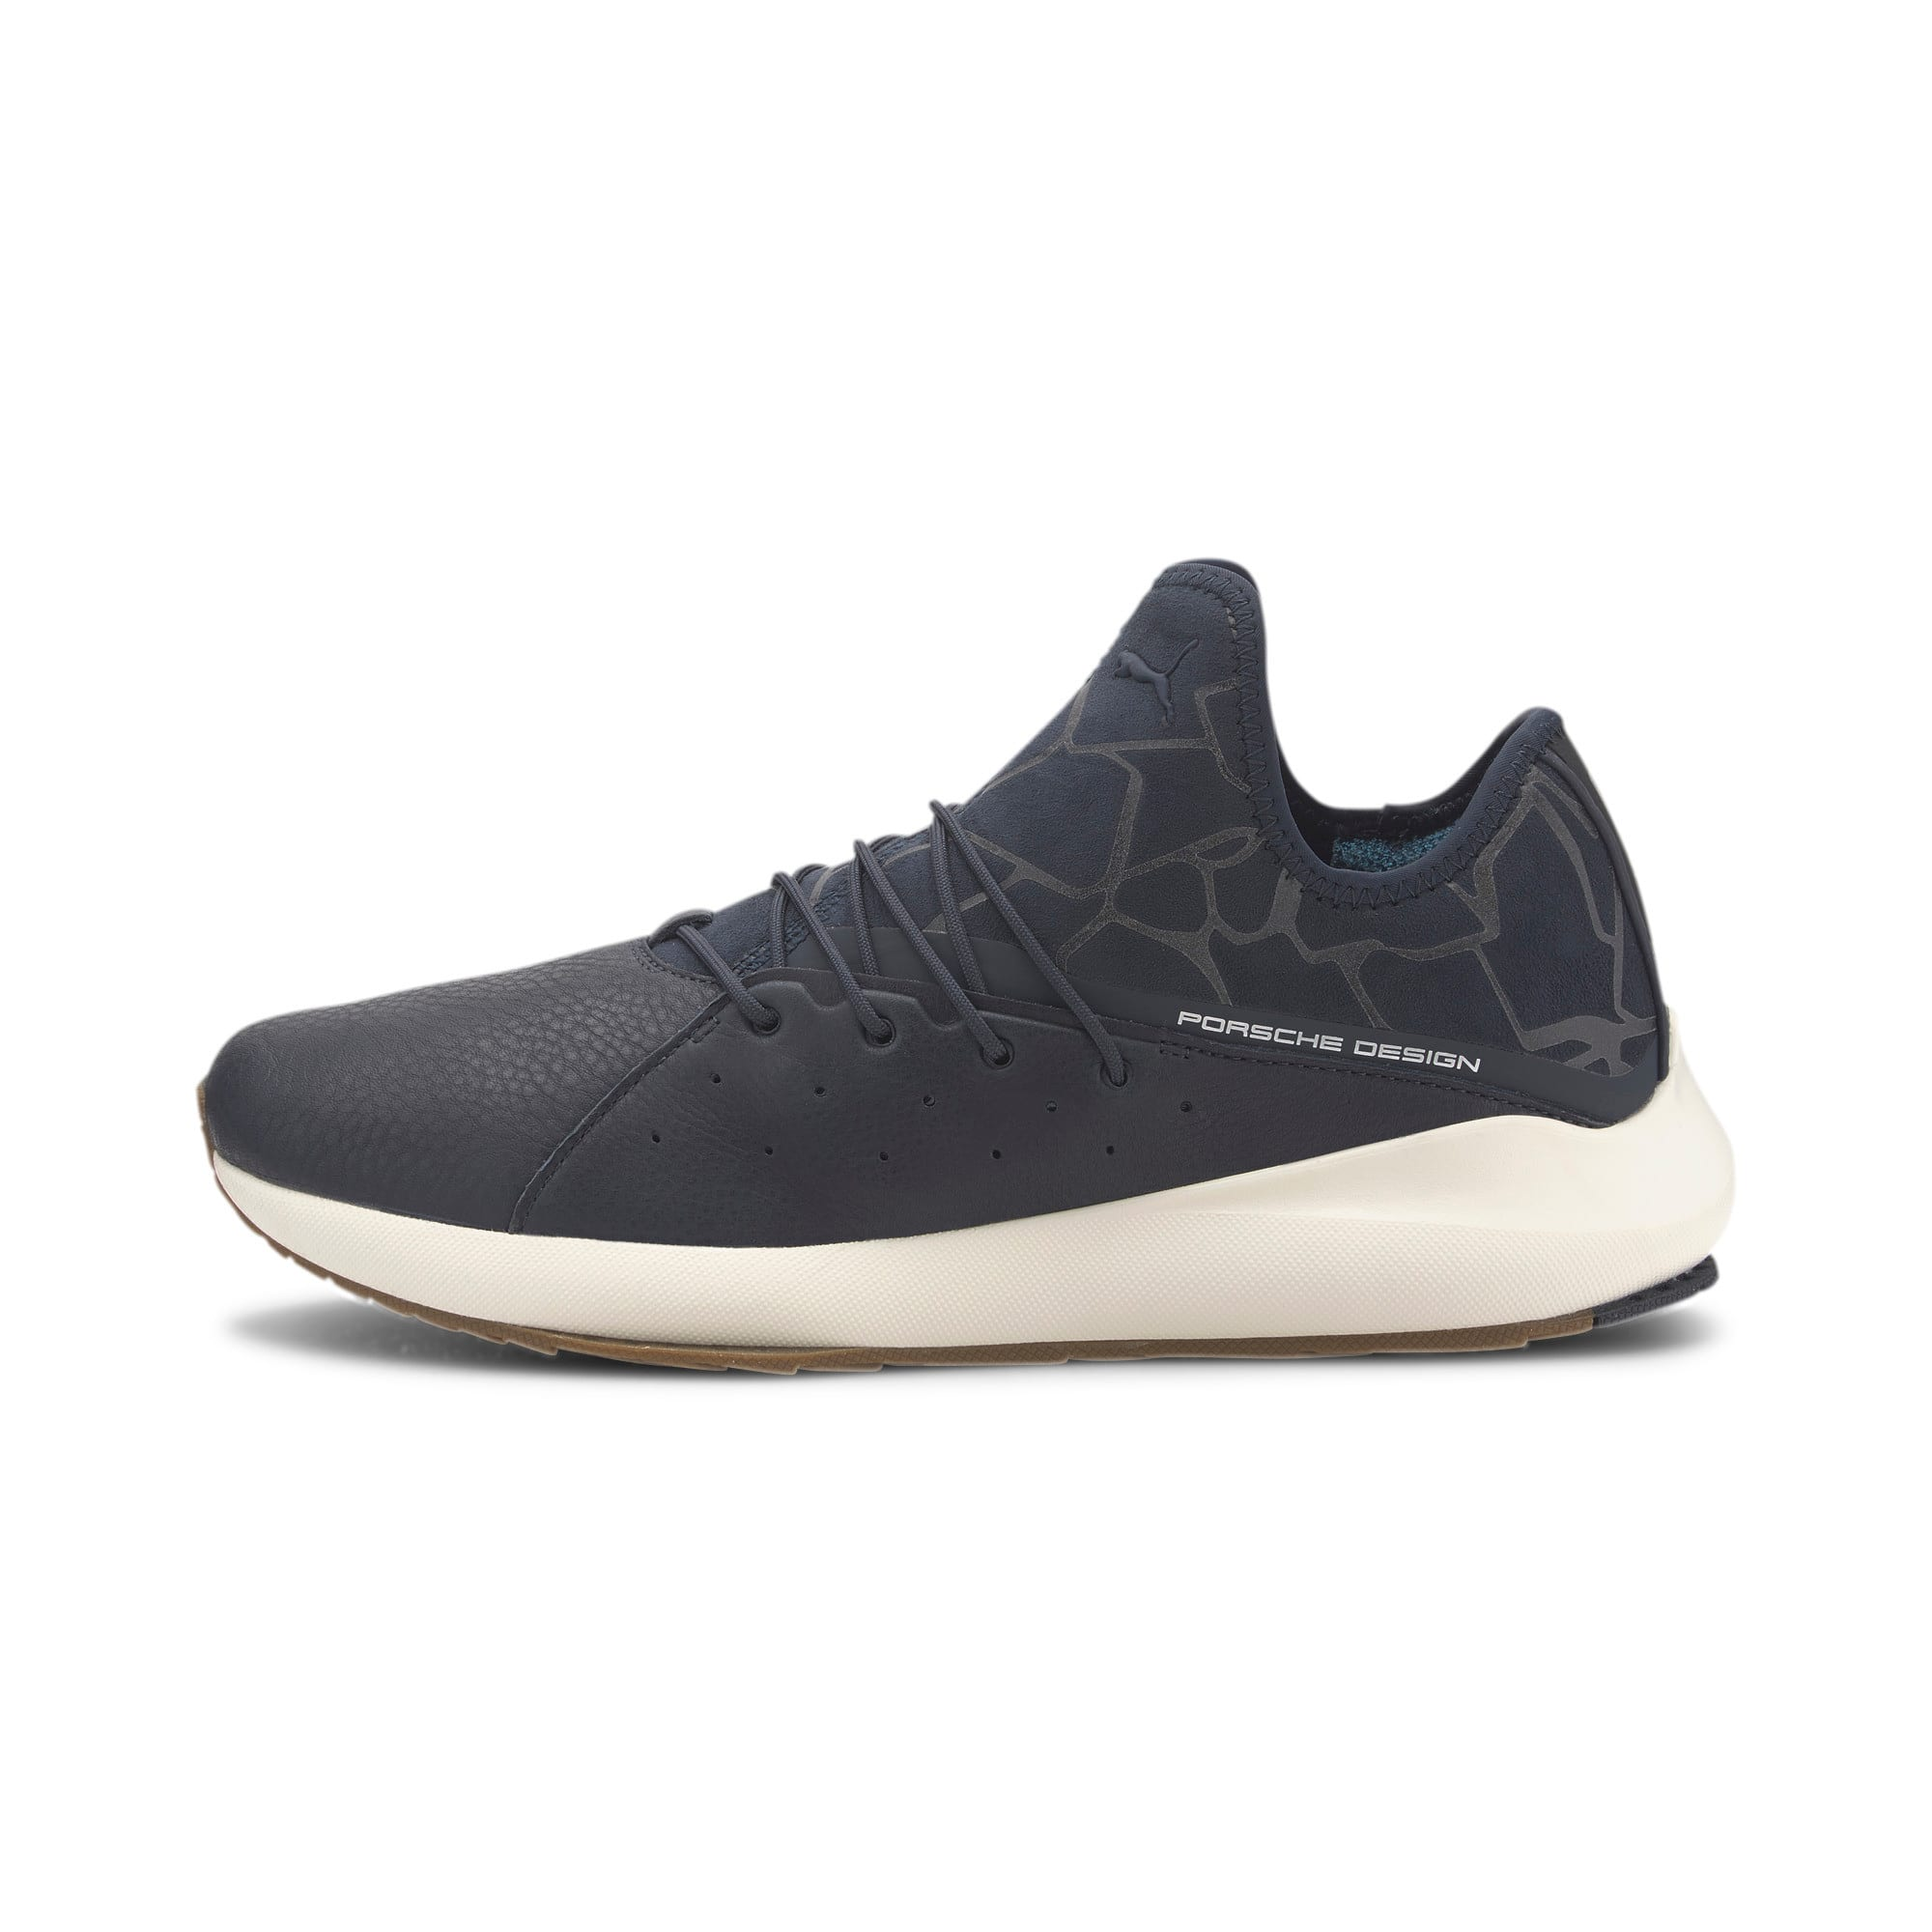 Thumbnail 1 of Porsche Design Evo Cat II Men's Training Shoes, Navy Blazer-Navy-WhisperW, medium